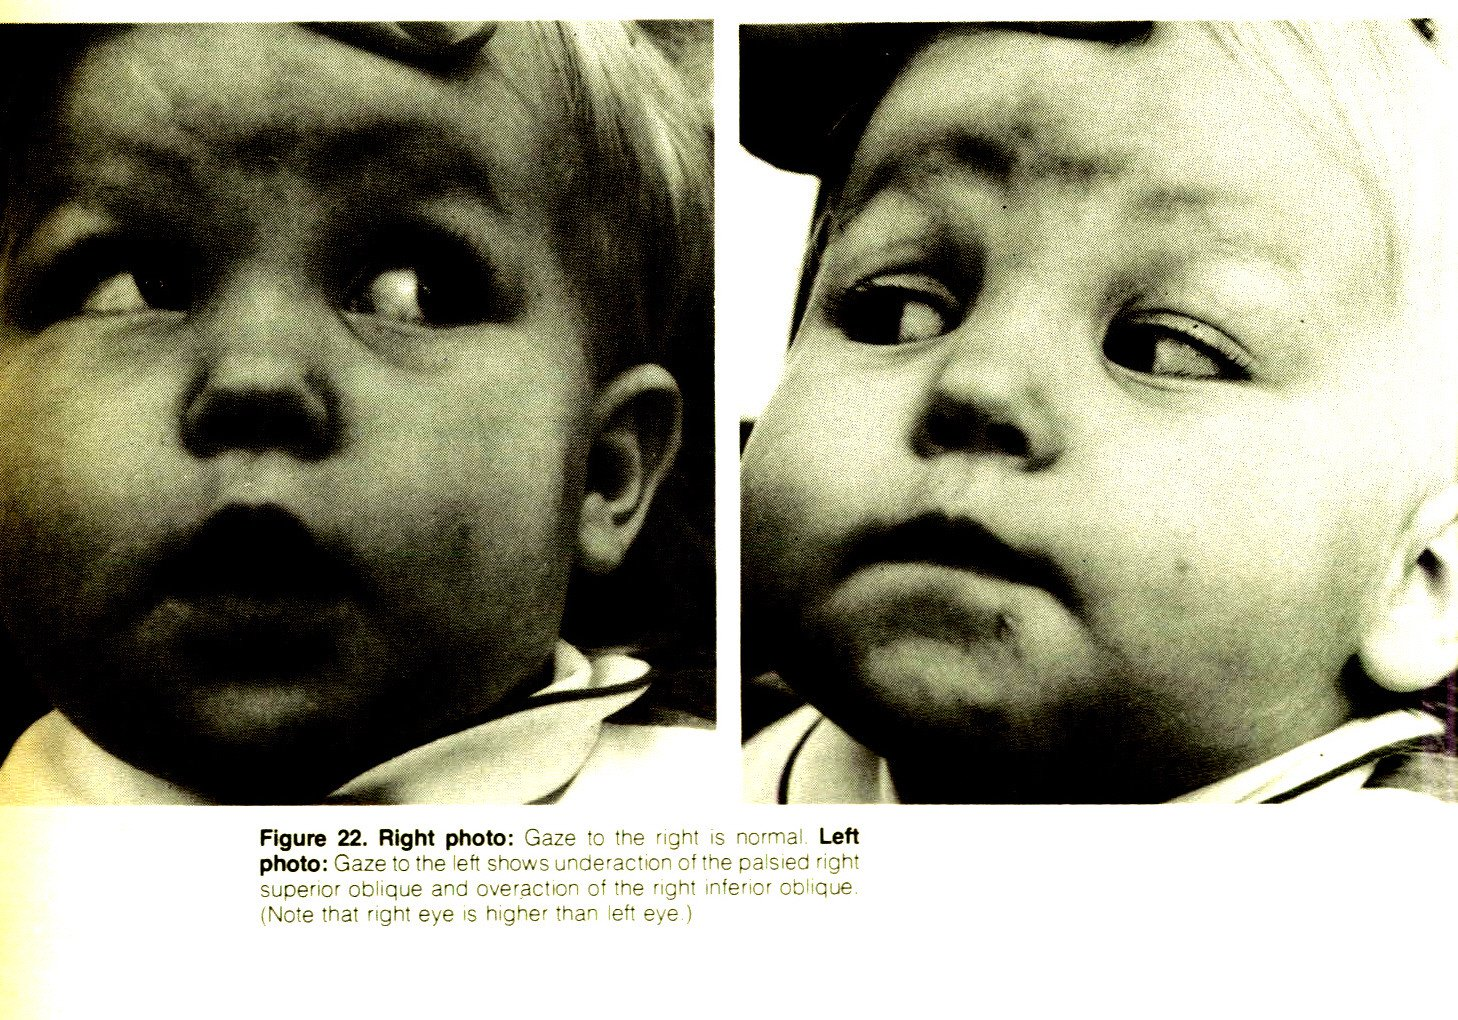 Figure 22. Right photo: Gaze to the right is norma Left photo: Gaze to the left shows underaction of the palsied right superior oblique and overaction of the right inferior oblique. (Note that right eye is higher than left eye.)